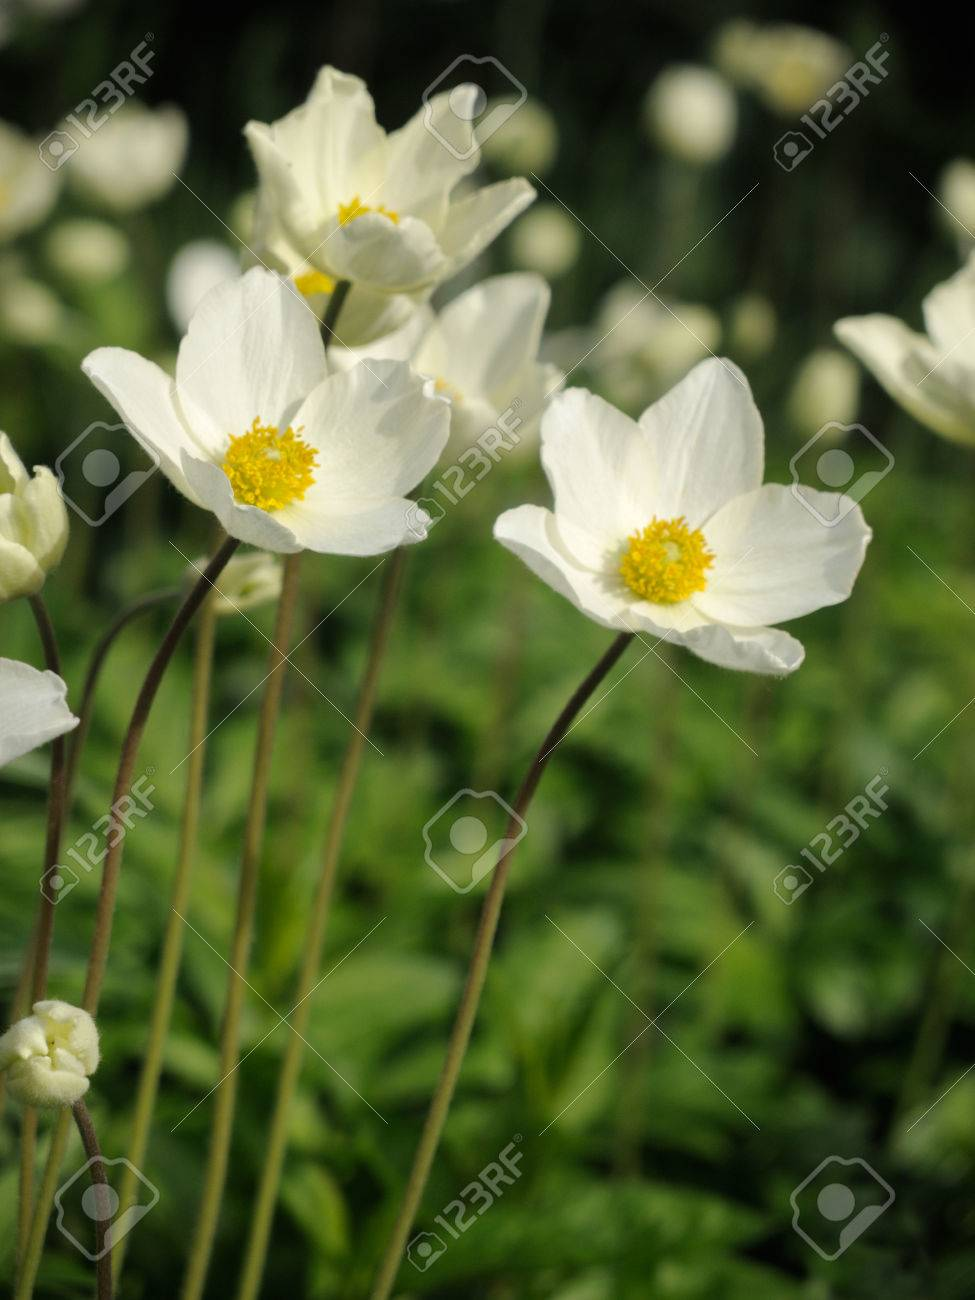 White spring flowers on green background. - 76650064